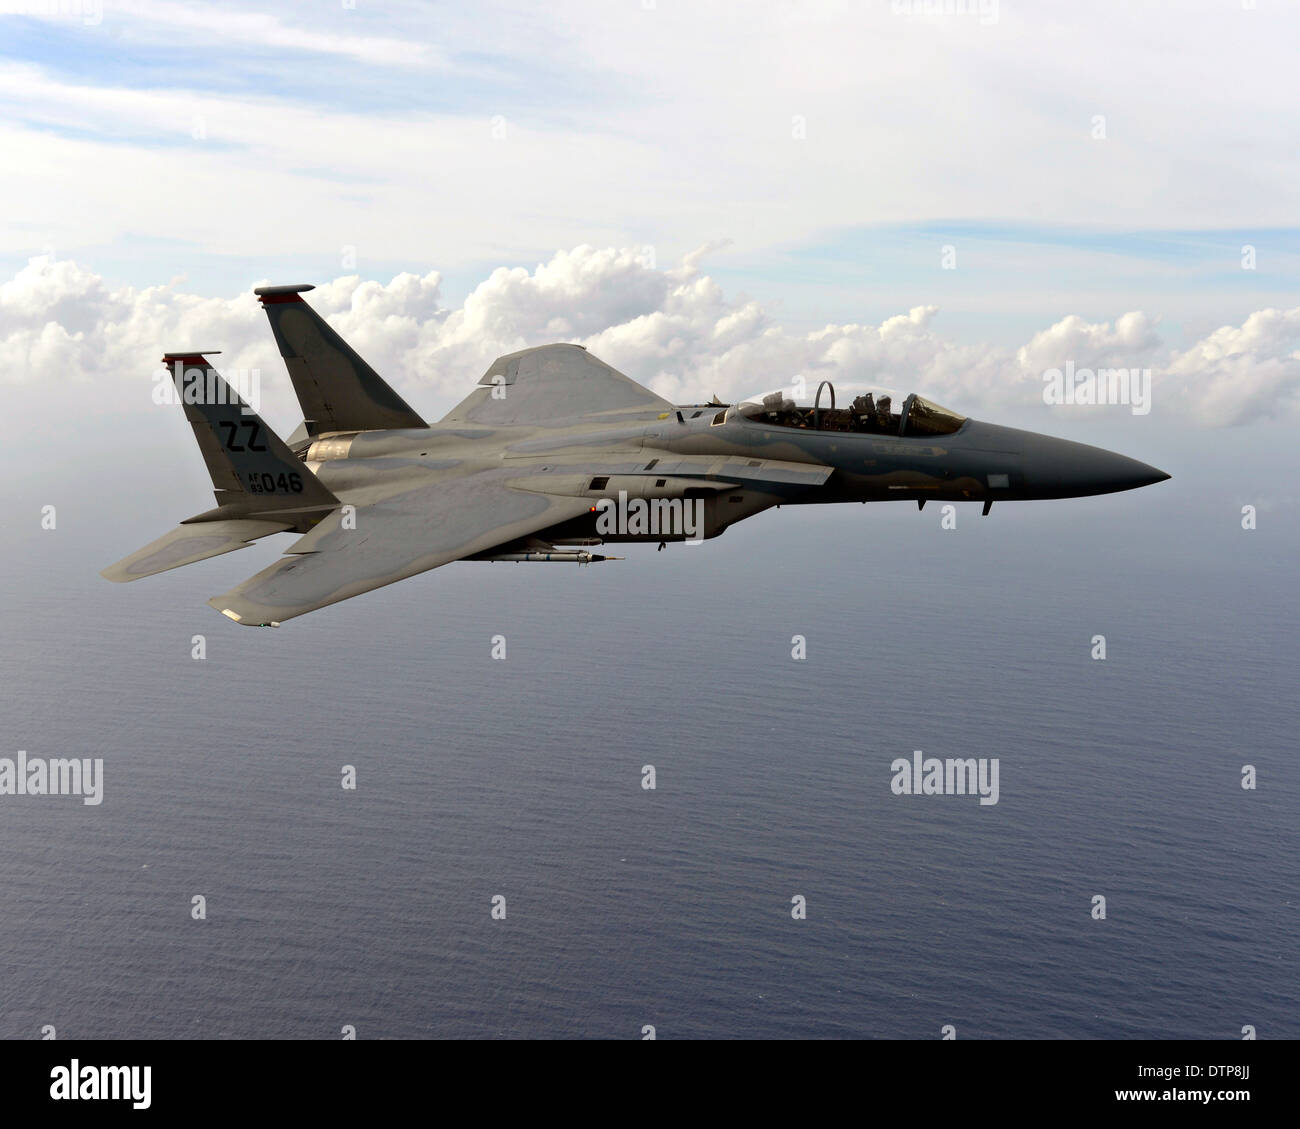 A US Air Force F-15 Eagle fighter aircraft flies over the Pacific Ocean in support of Cope North 2014 February 18, 2014 near Guam. - Stock Image